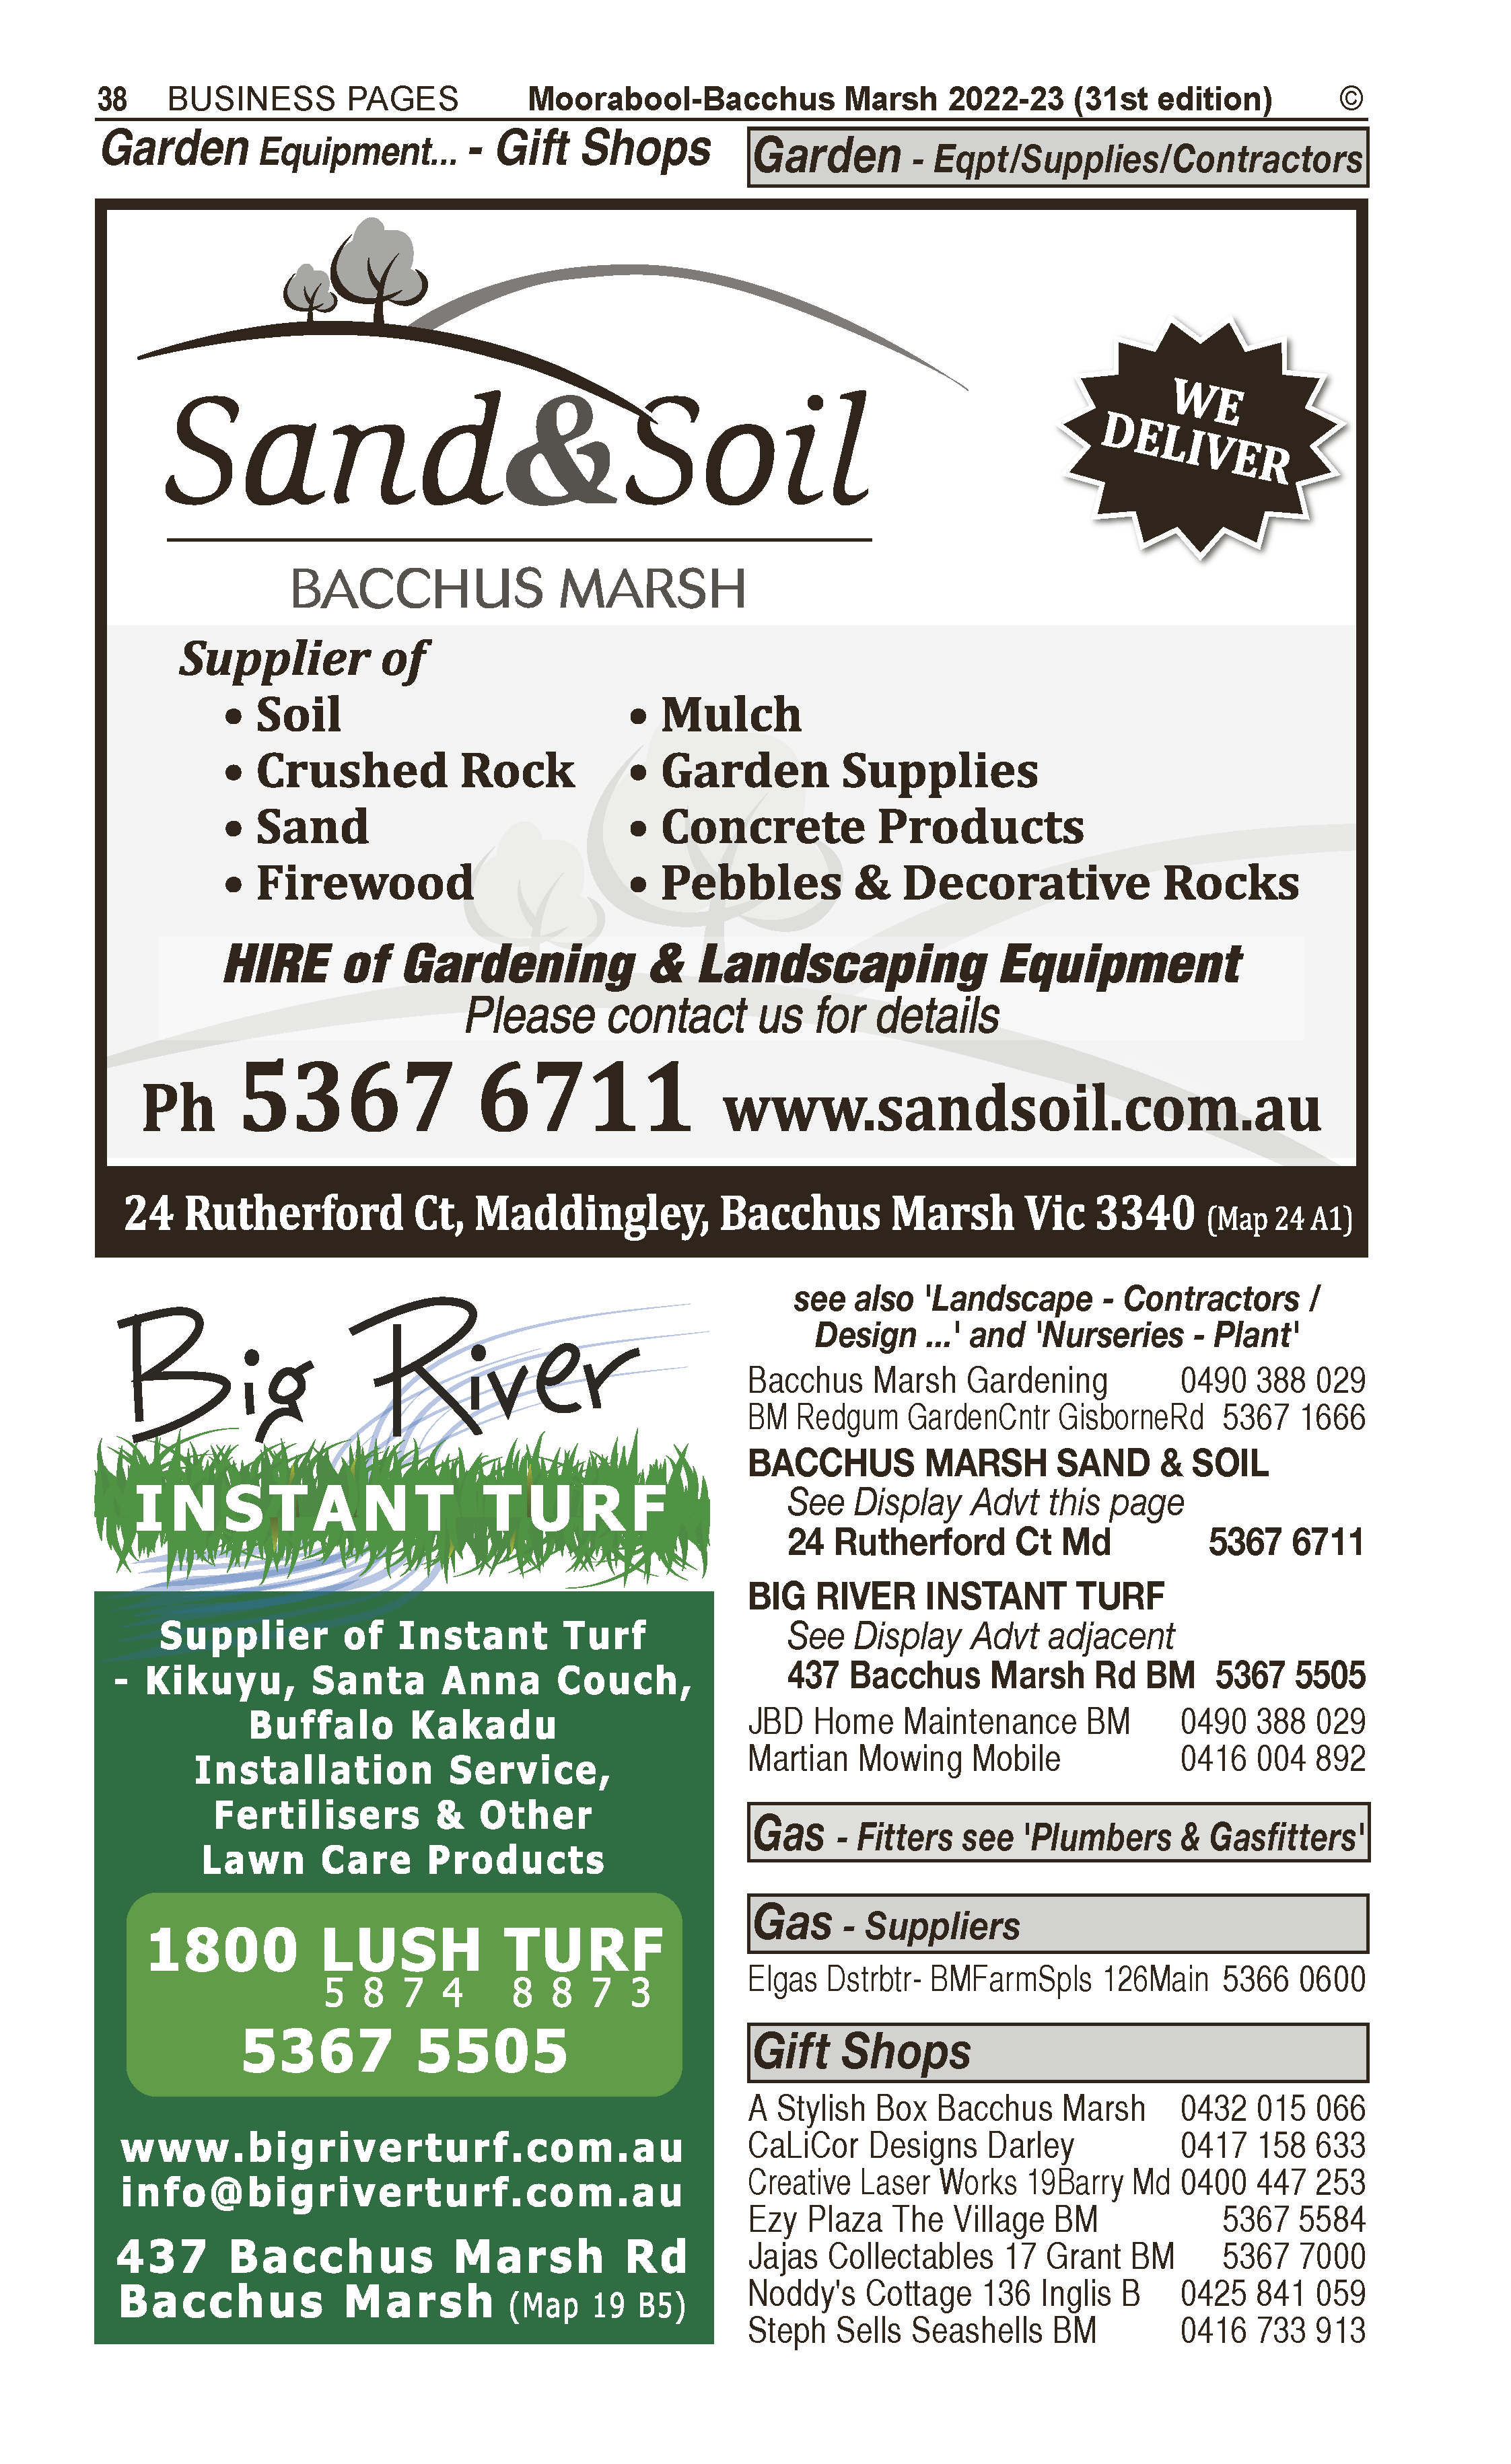 Big River Instant Turf | Garden – Contractors in Bacchus Marsh | PBezy Pocket Books local directories - page 38